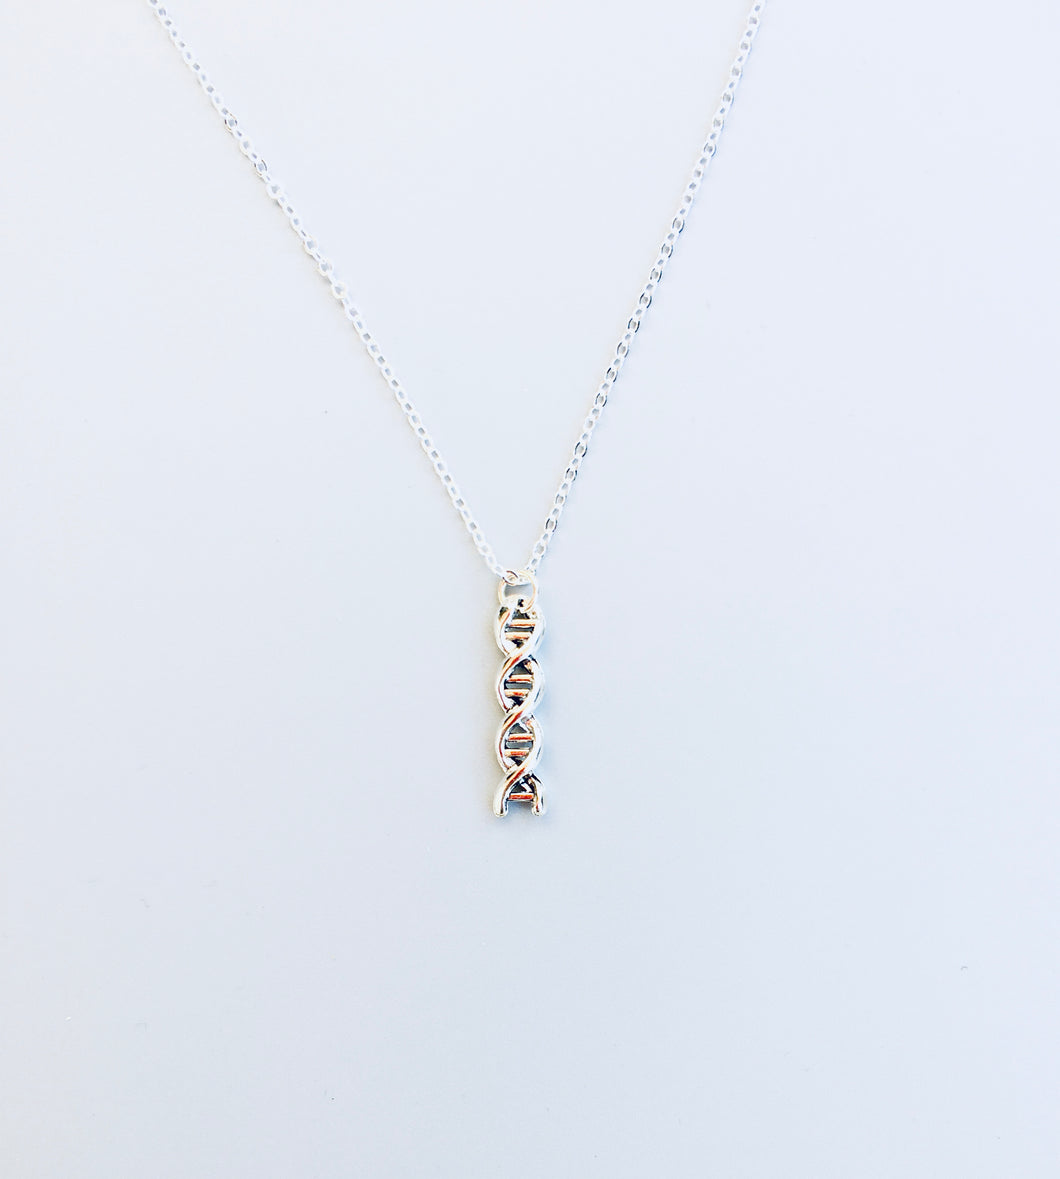 DNA Necklace - Small